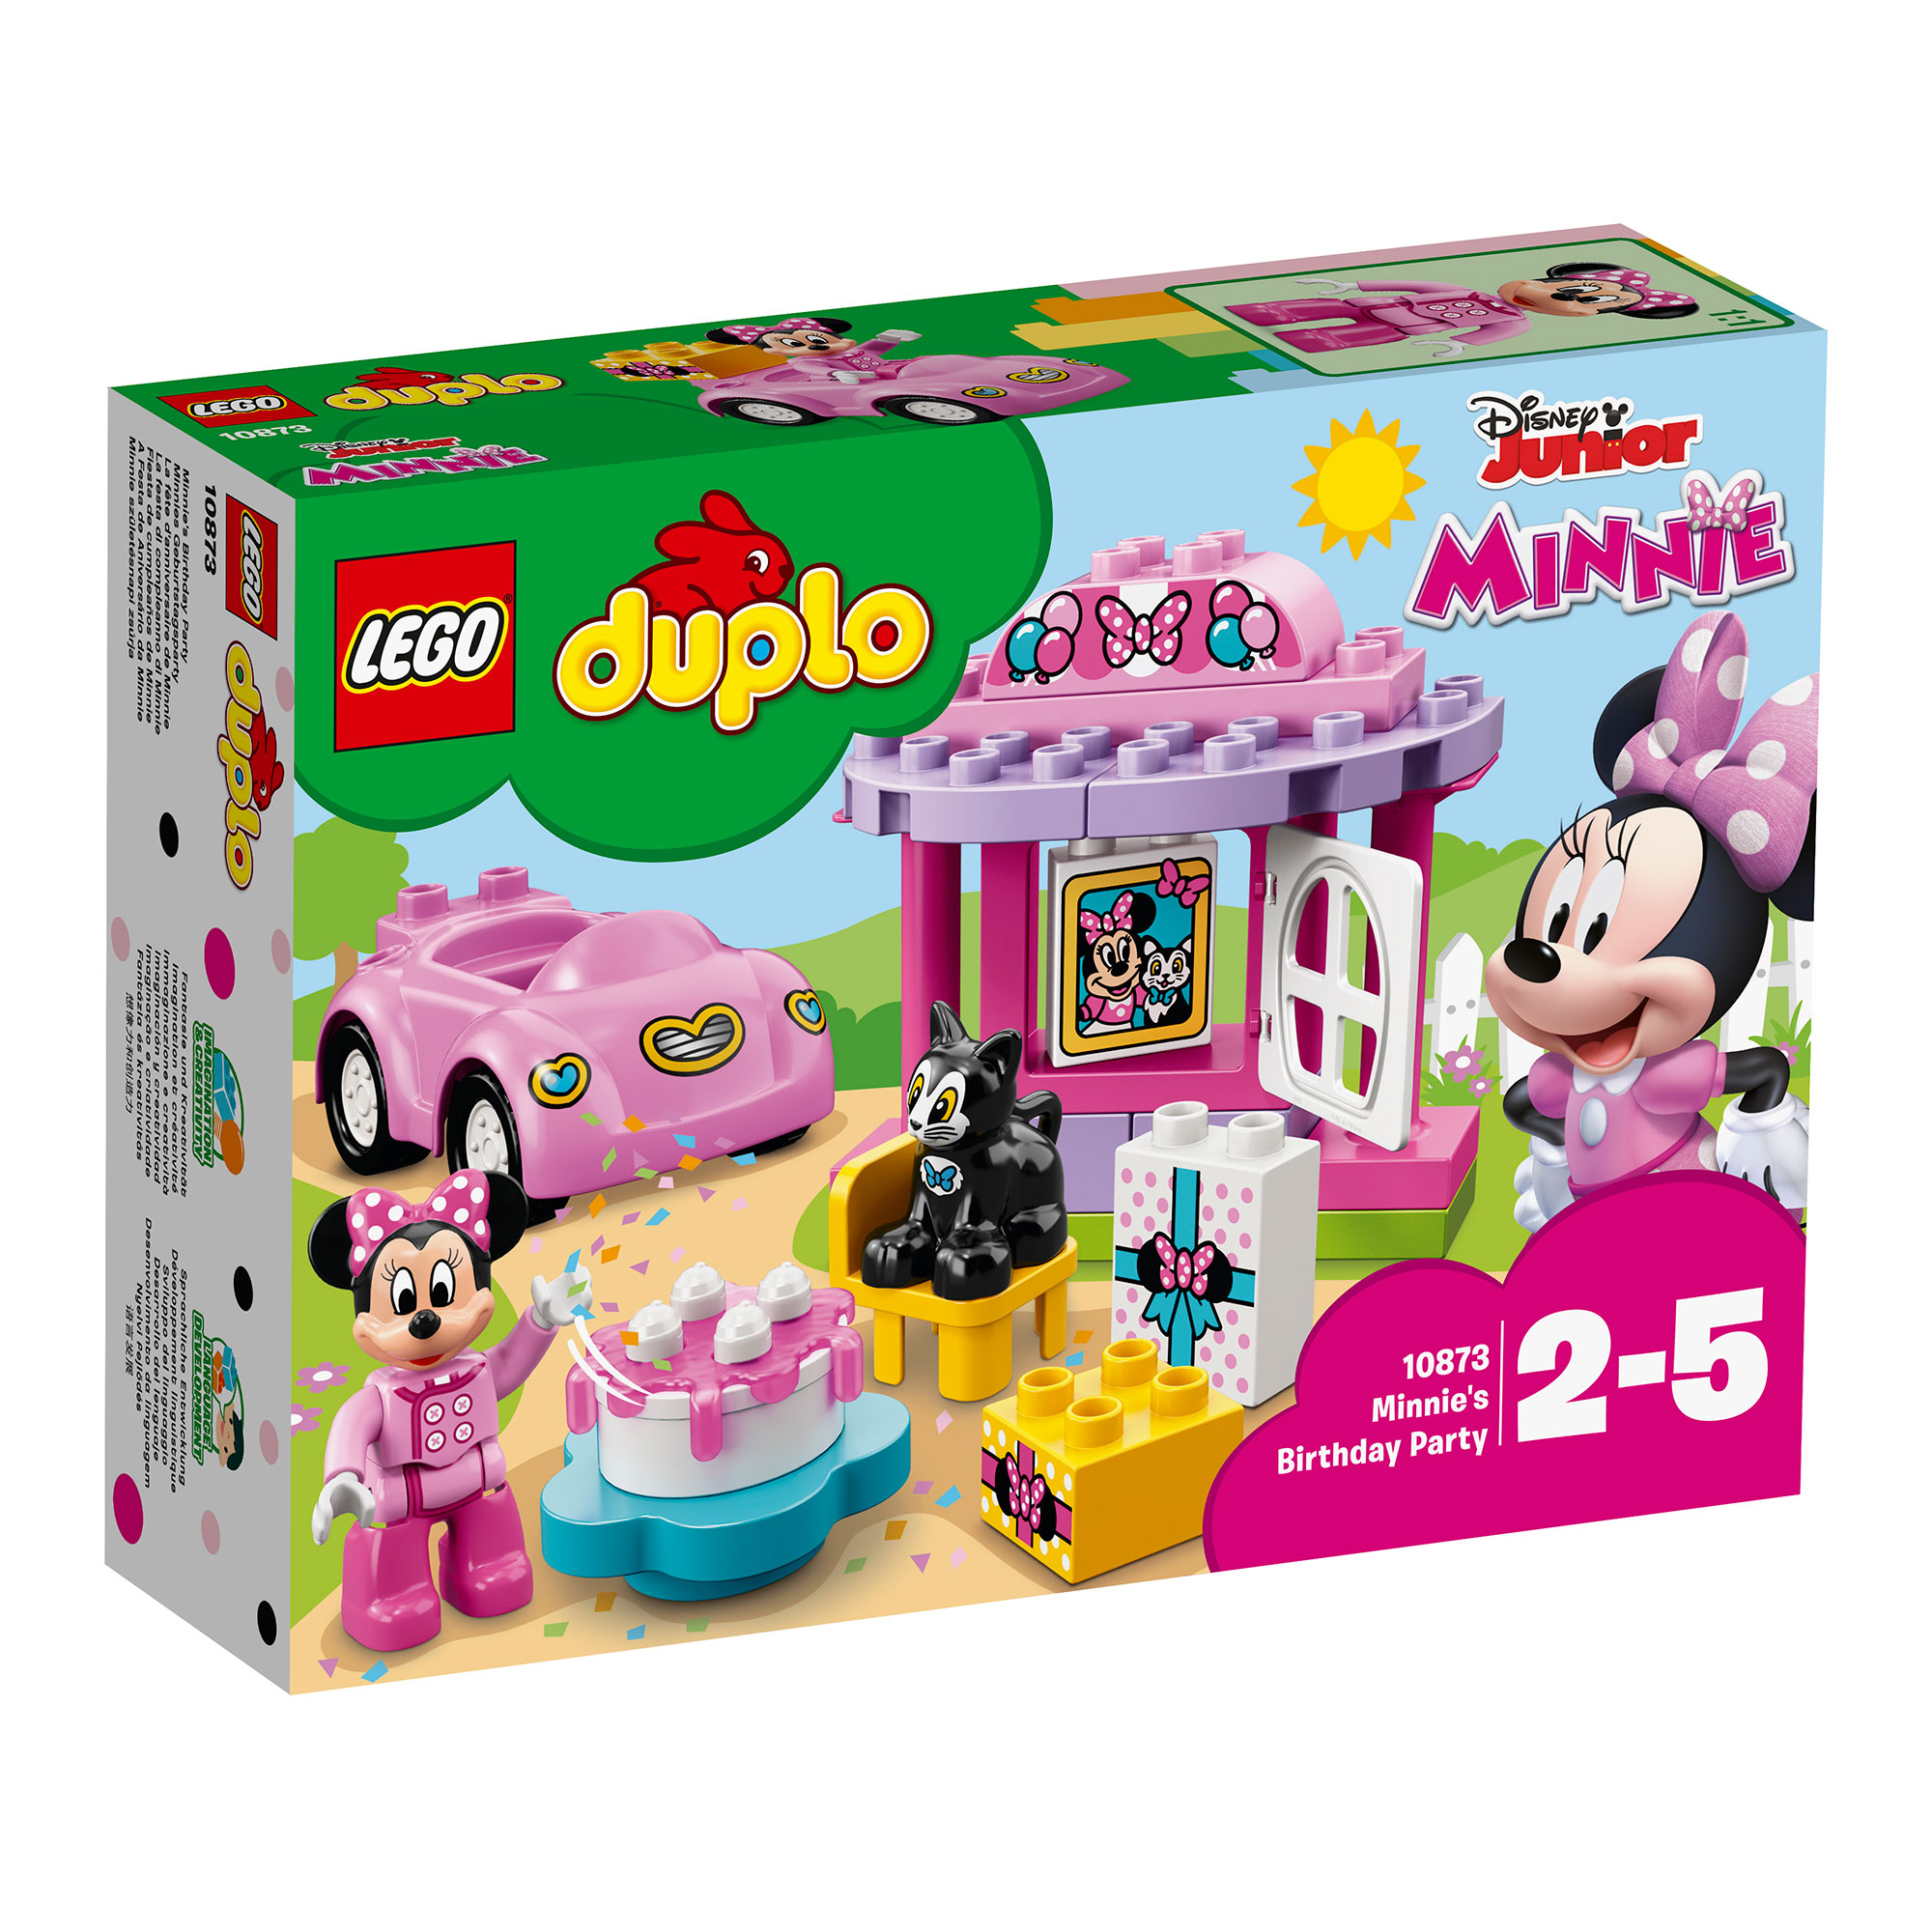 Picture of LEGO DUPLO Minnie's Birthday Party 10873